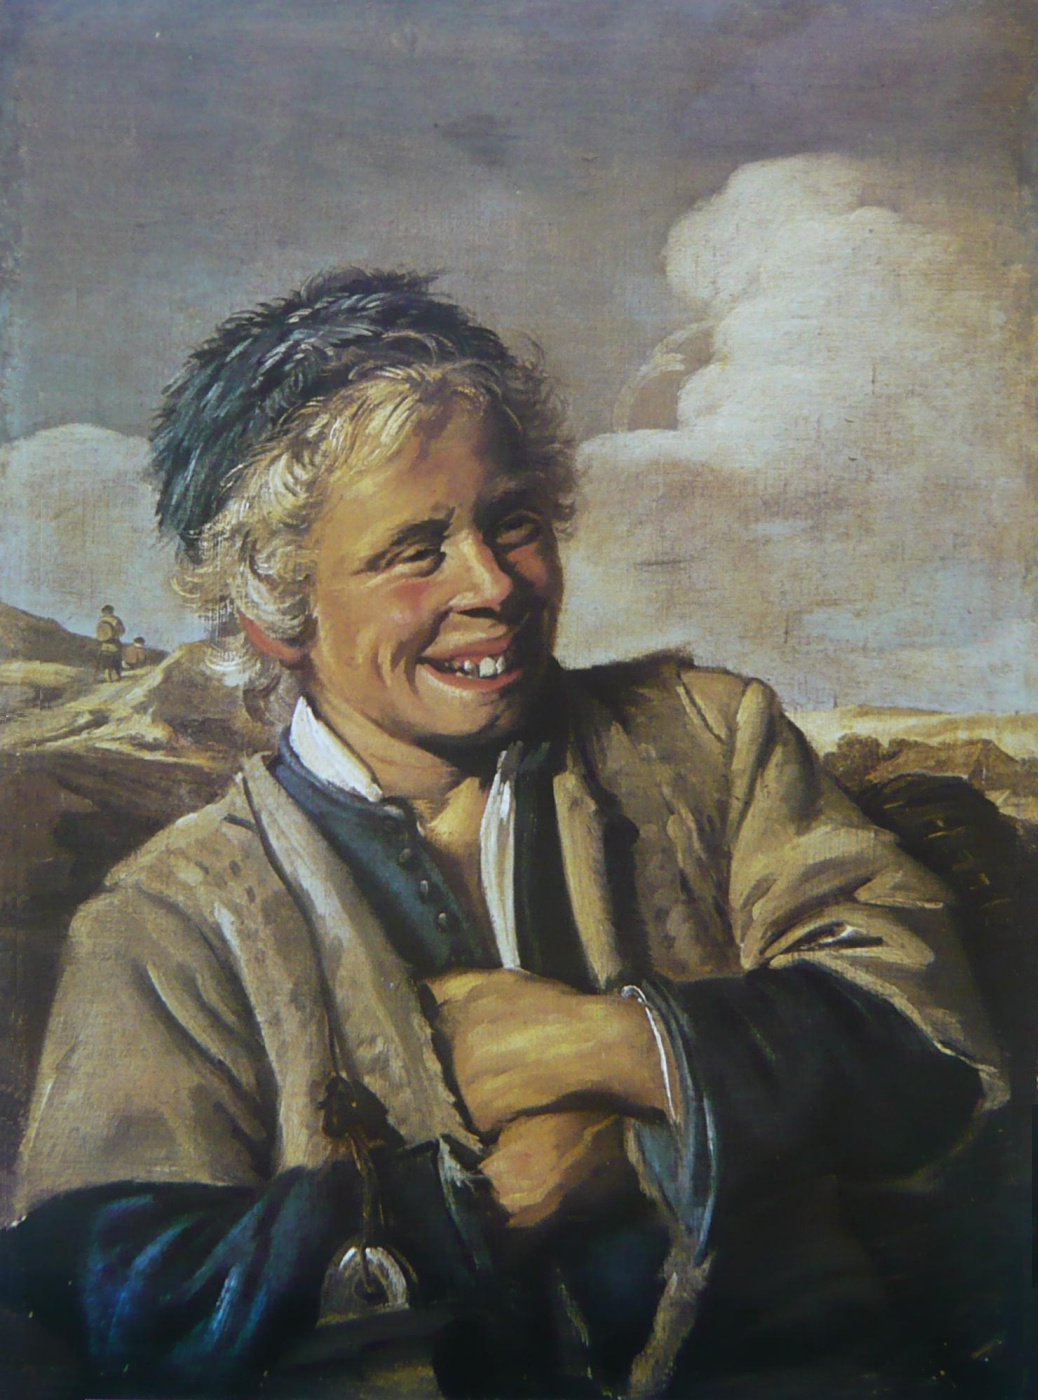 Frans Hals. Laughing Fisherboy